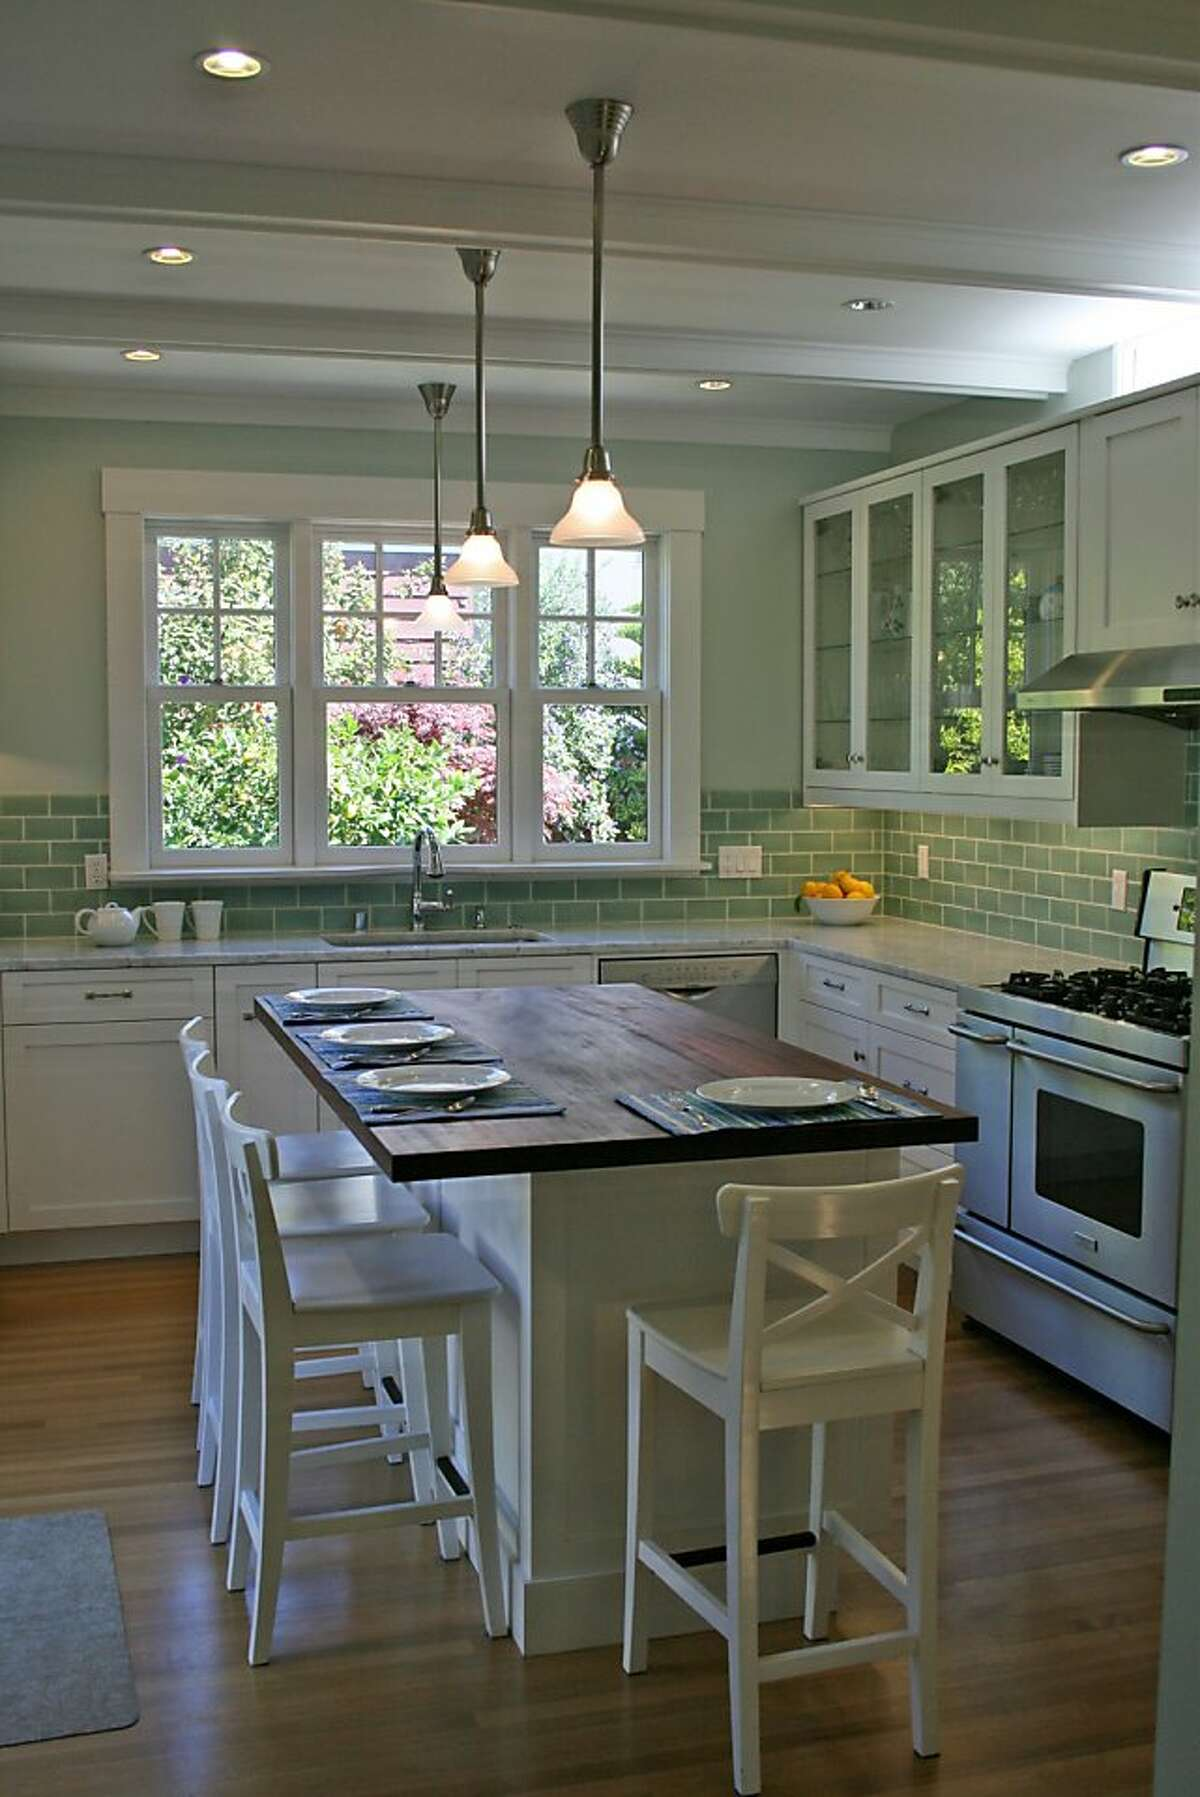 A rustic wood-covered island doubles as a place to dine in this Craftsman-style kitchen featured on the Rockridge Kitchen Tour on Oct. 2.